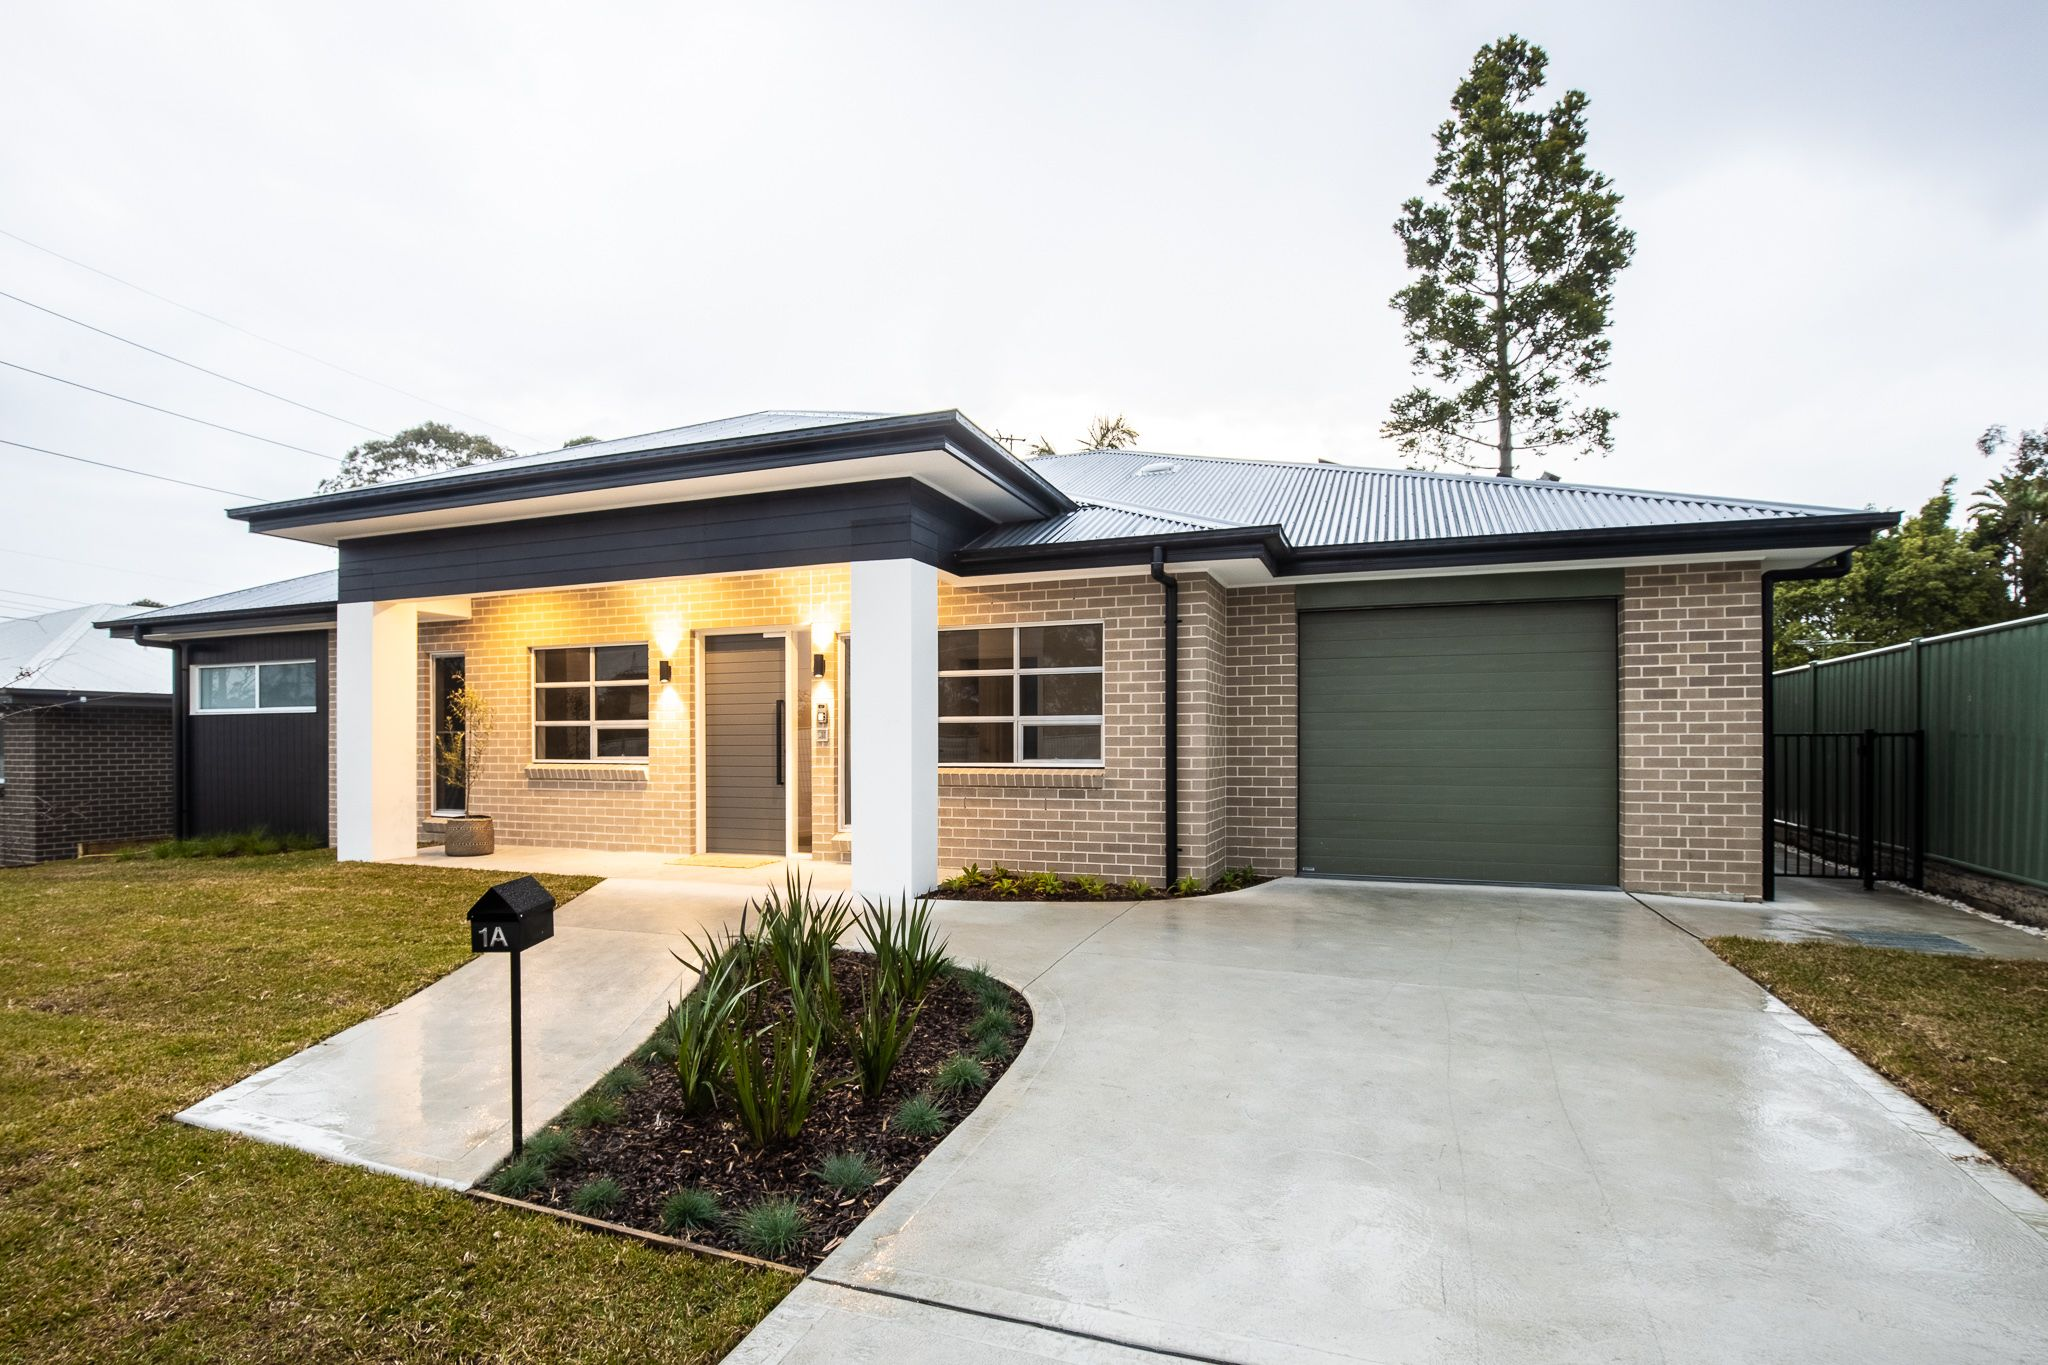 SDA Provider Launches First Home In Mount Colah